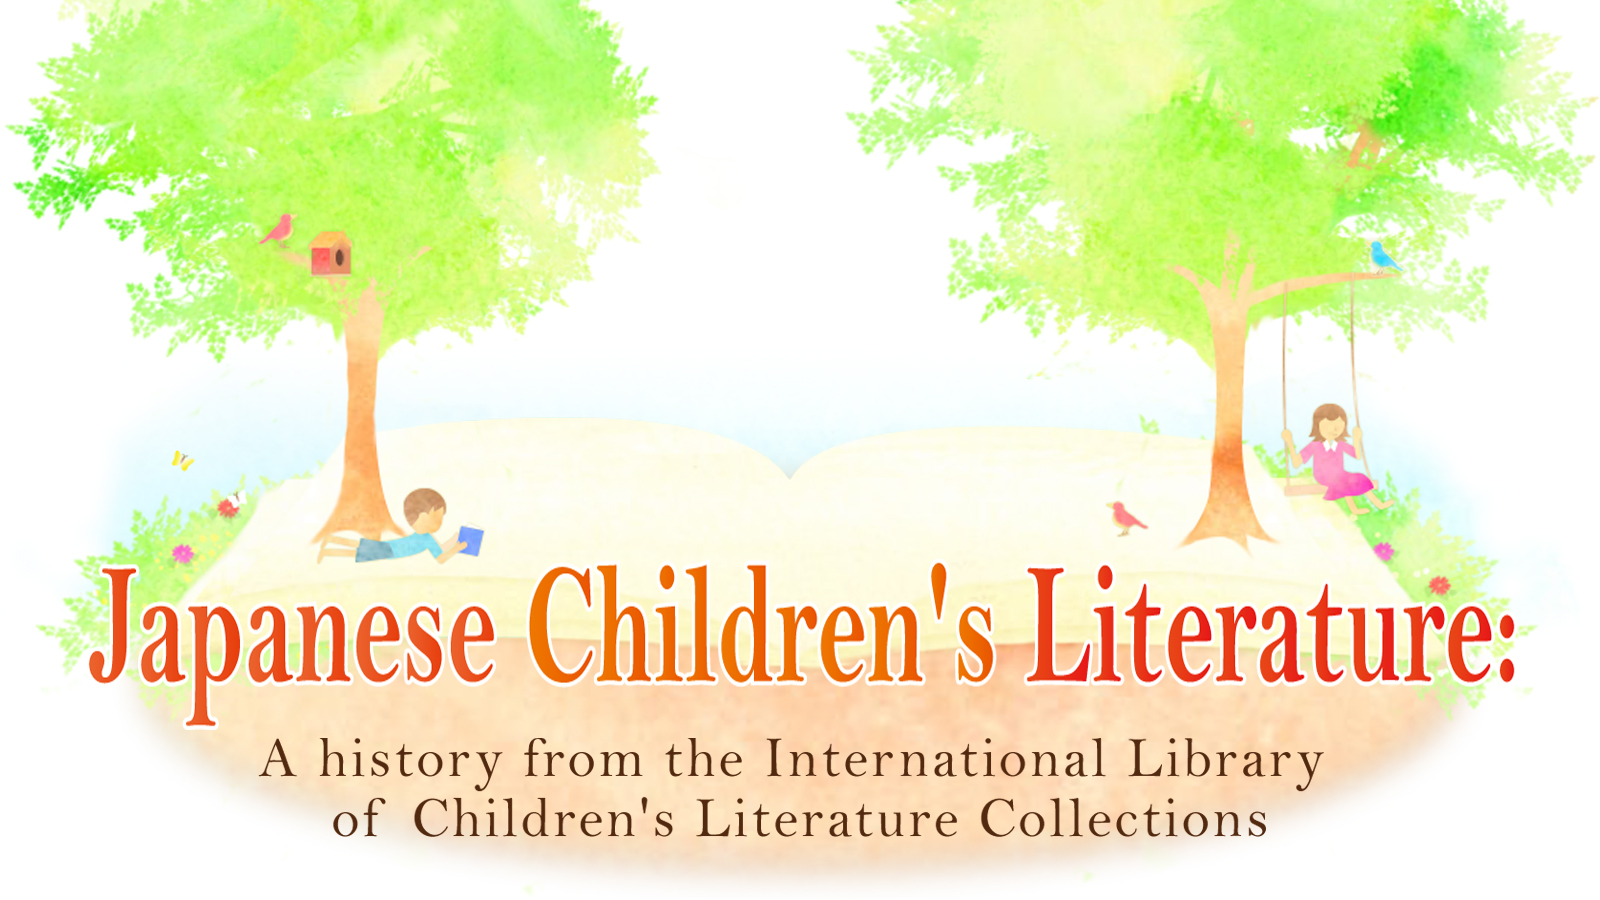 Japanese Children's Literature